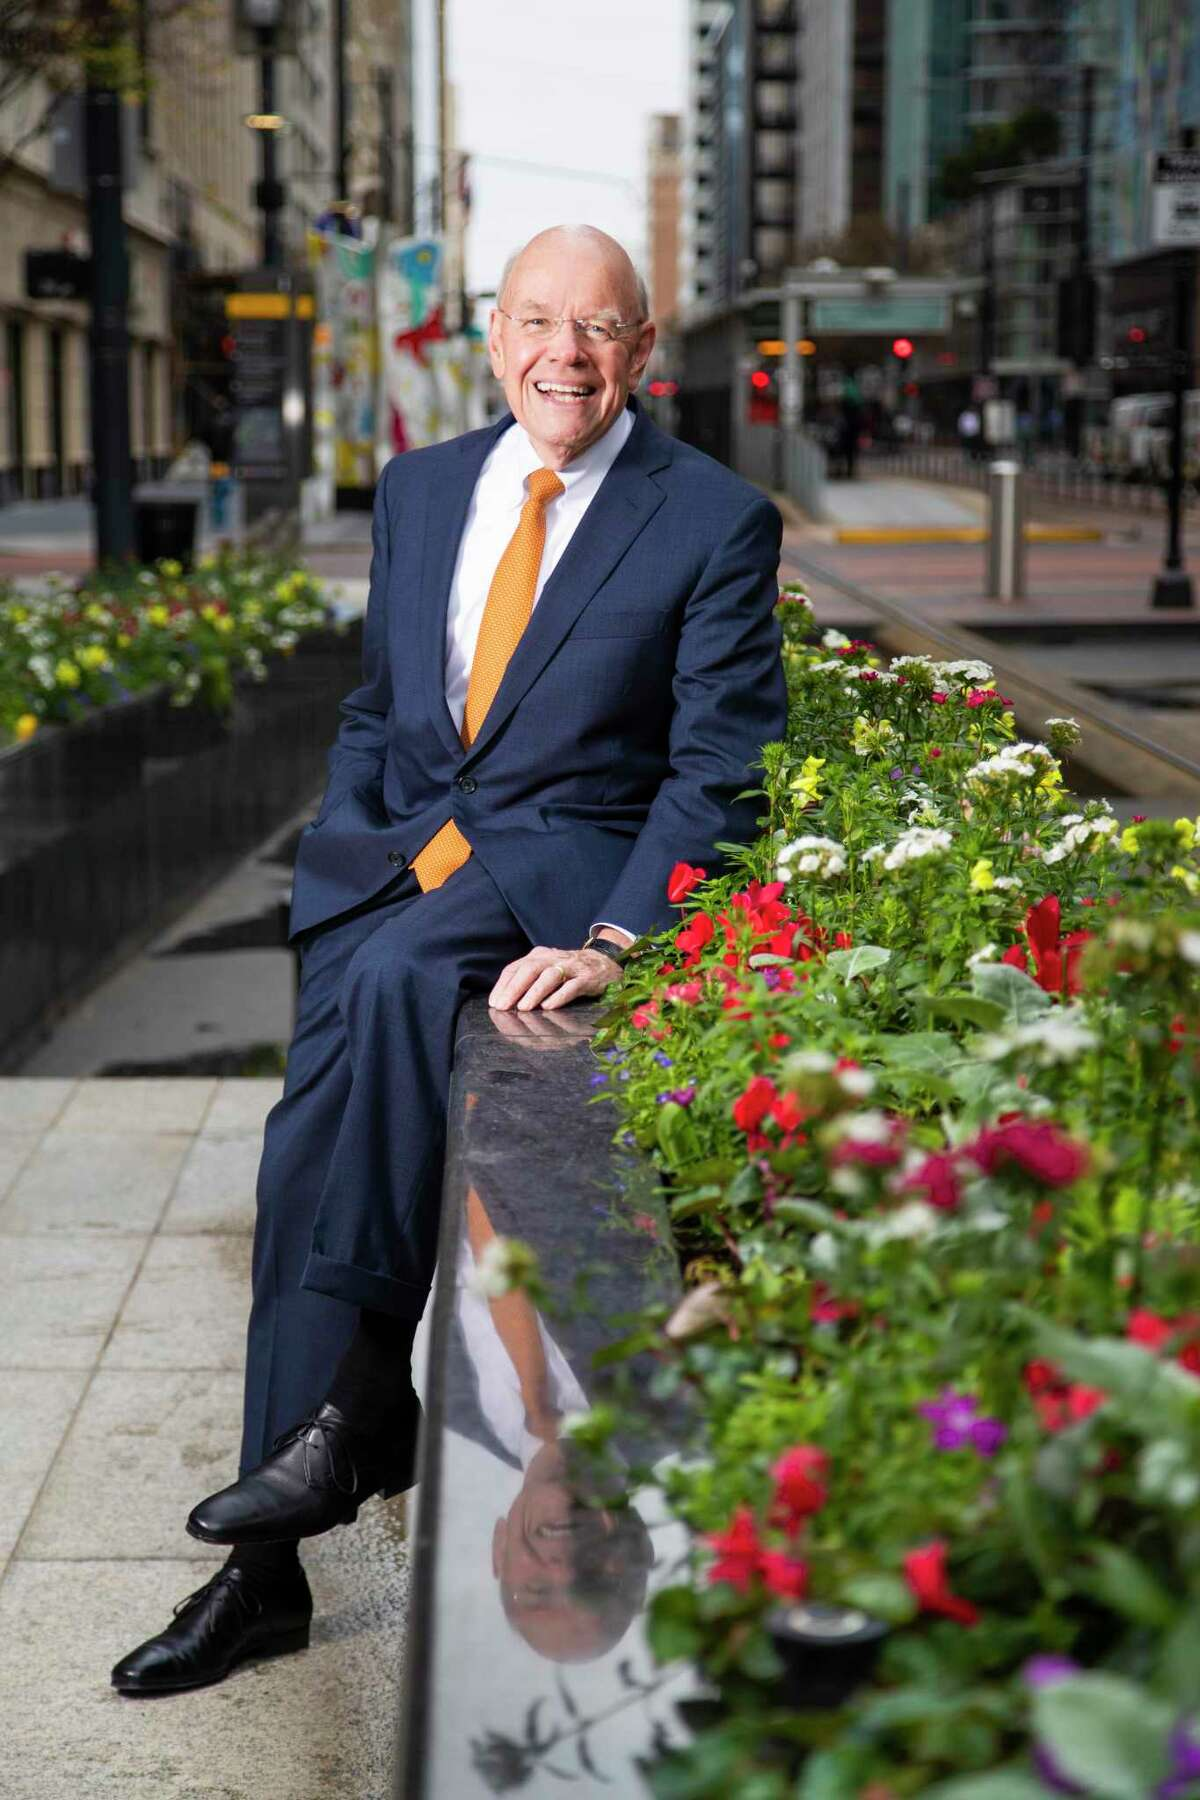 Outgoing Downtown District president Bob Eury in the downtown's Main Street area on Wednesday, Jan. 29, 2020, in Houston.